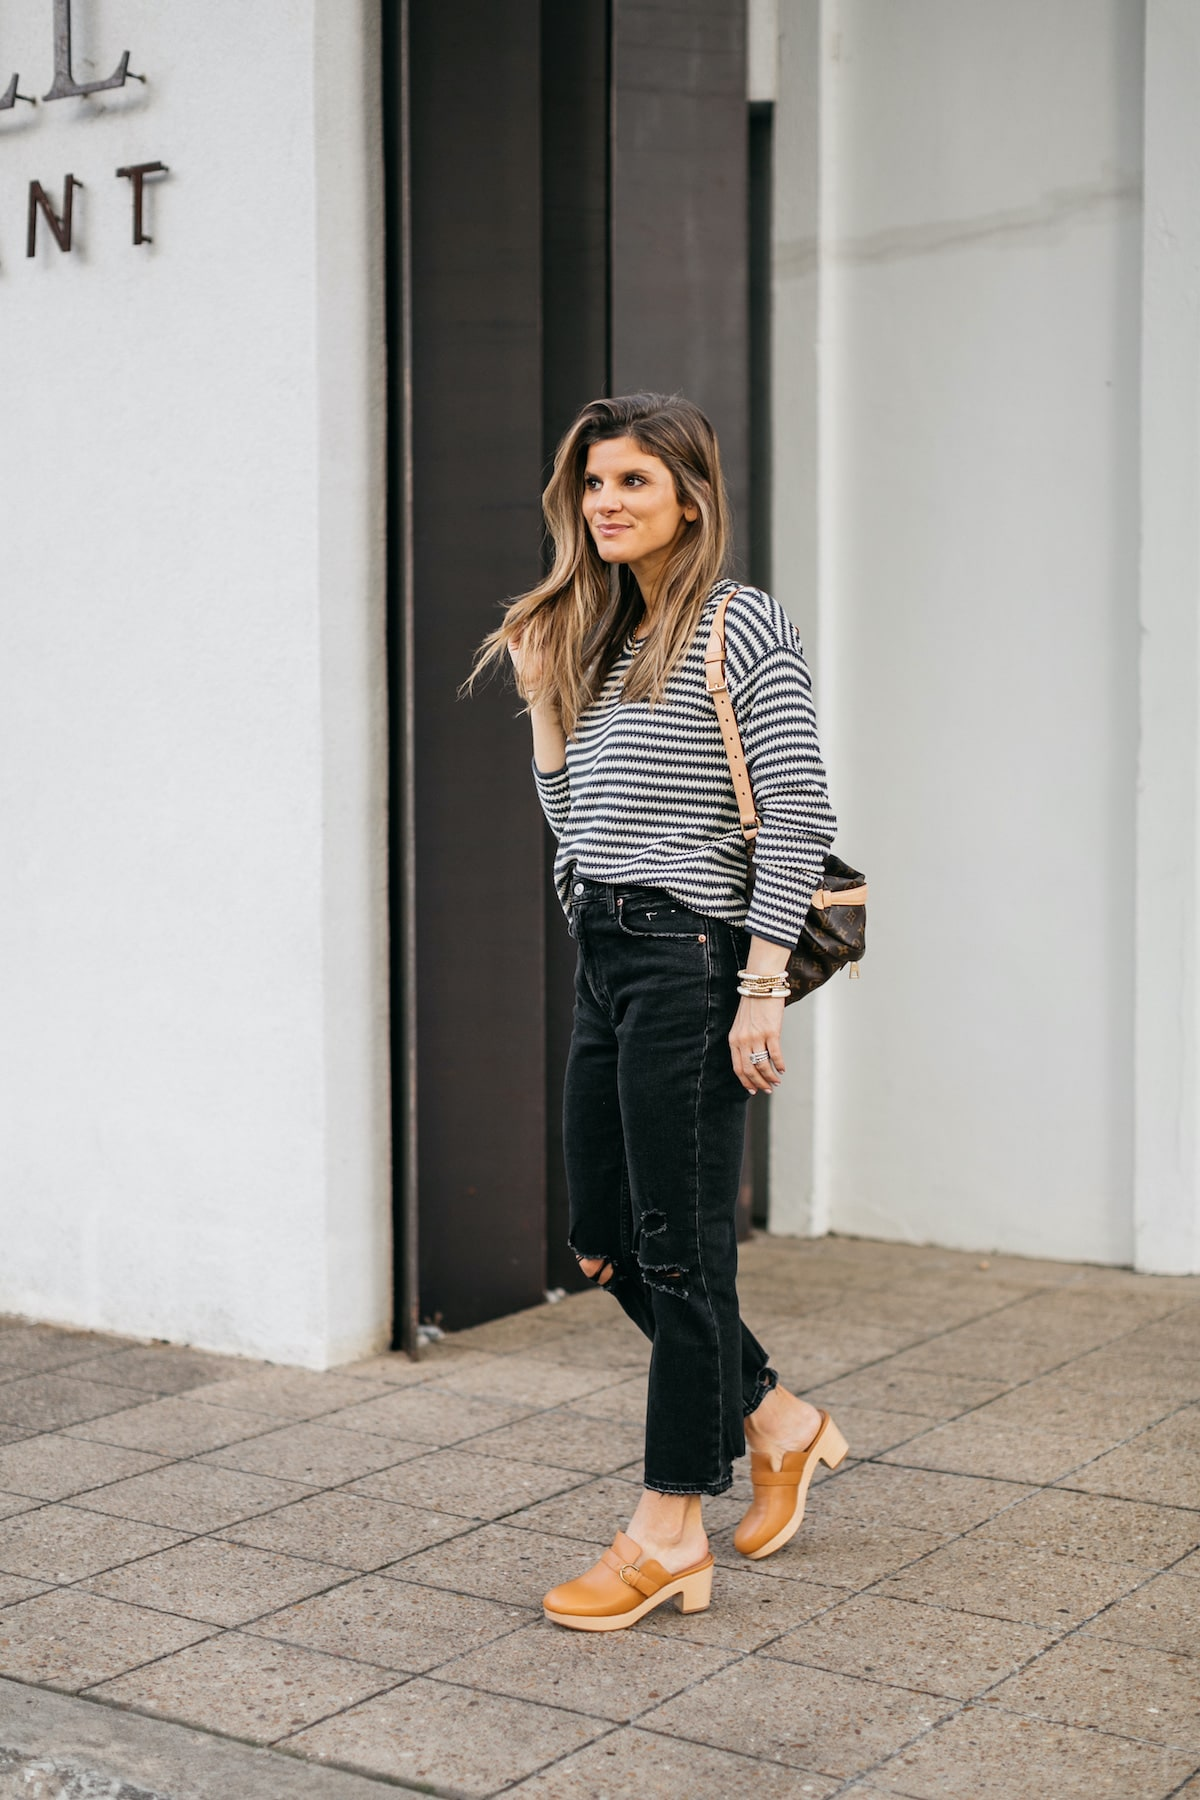 Brighton Butler wearing striped madewell sweater with black jeans, clogs and LV bumbag